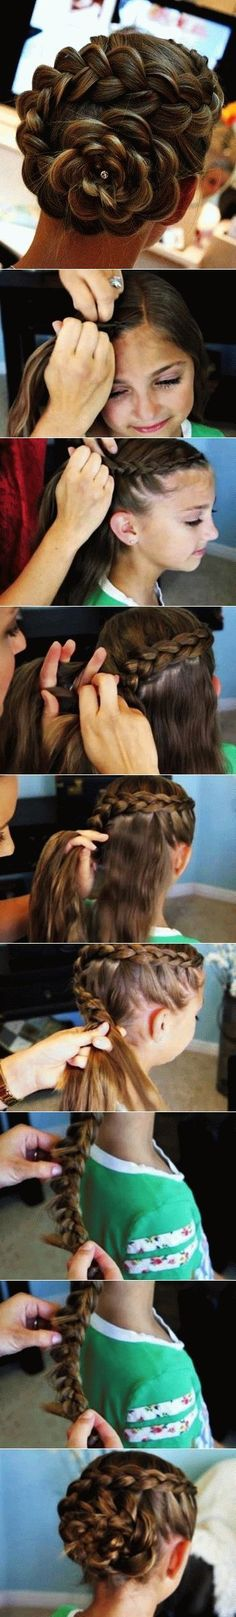 DIY Flower Hair beauty long hair updo braids how to diy hair hairstyles tutorials hair tutorials easy hairstyles The post DIY Flower Hair beauty long hair updo braids how to diy hair hairstyles tutorial appeared first on Hair Styles. Hairstyles Haircuts, Pretty Hairstyles, Braided Hairstyles, Wedding Hairstyles, Hairstyle Braid, Latest Hairstyles, Flower Hairstyles, Lehenga Hairstyles, Braided Updo